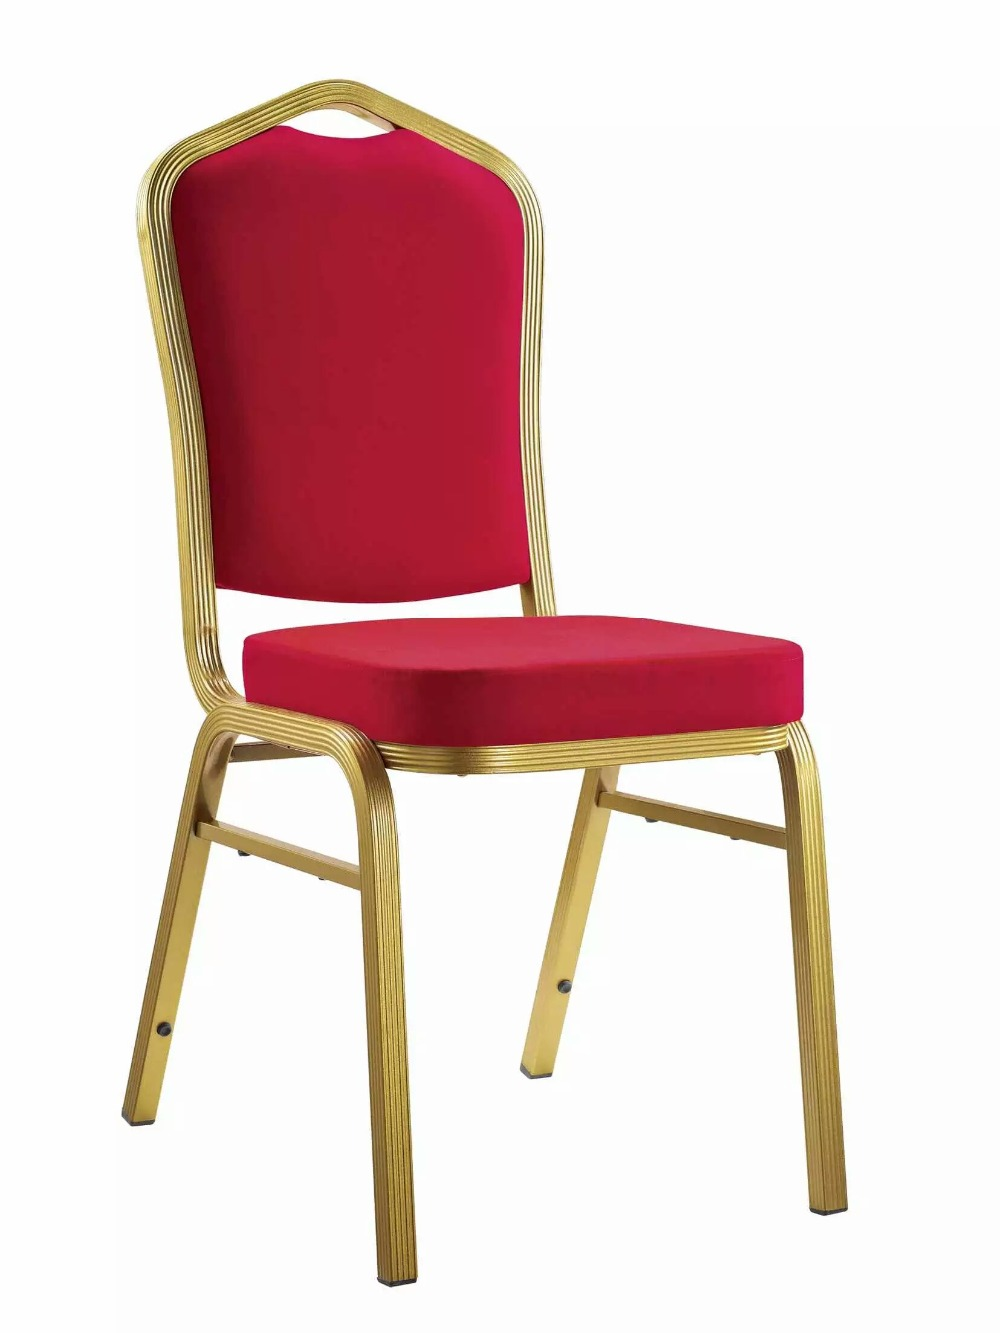 Us 17 0 Banquet Chair Stackable Chairs Restaurant Chairs Metal 5pc Carton In Hotel Chairs From Furniture On Aliexpress 11 11 Double 11 Singles